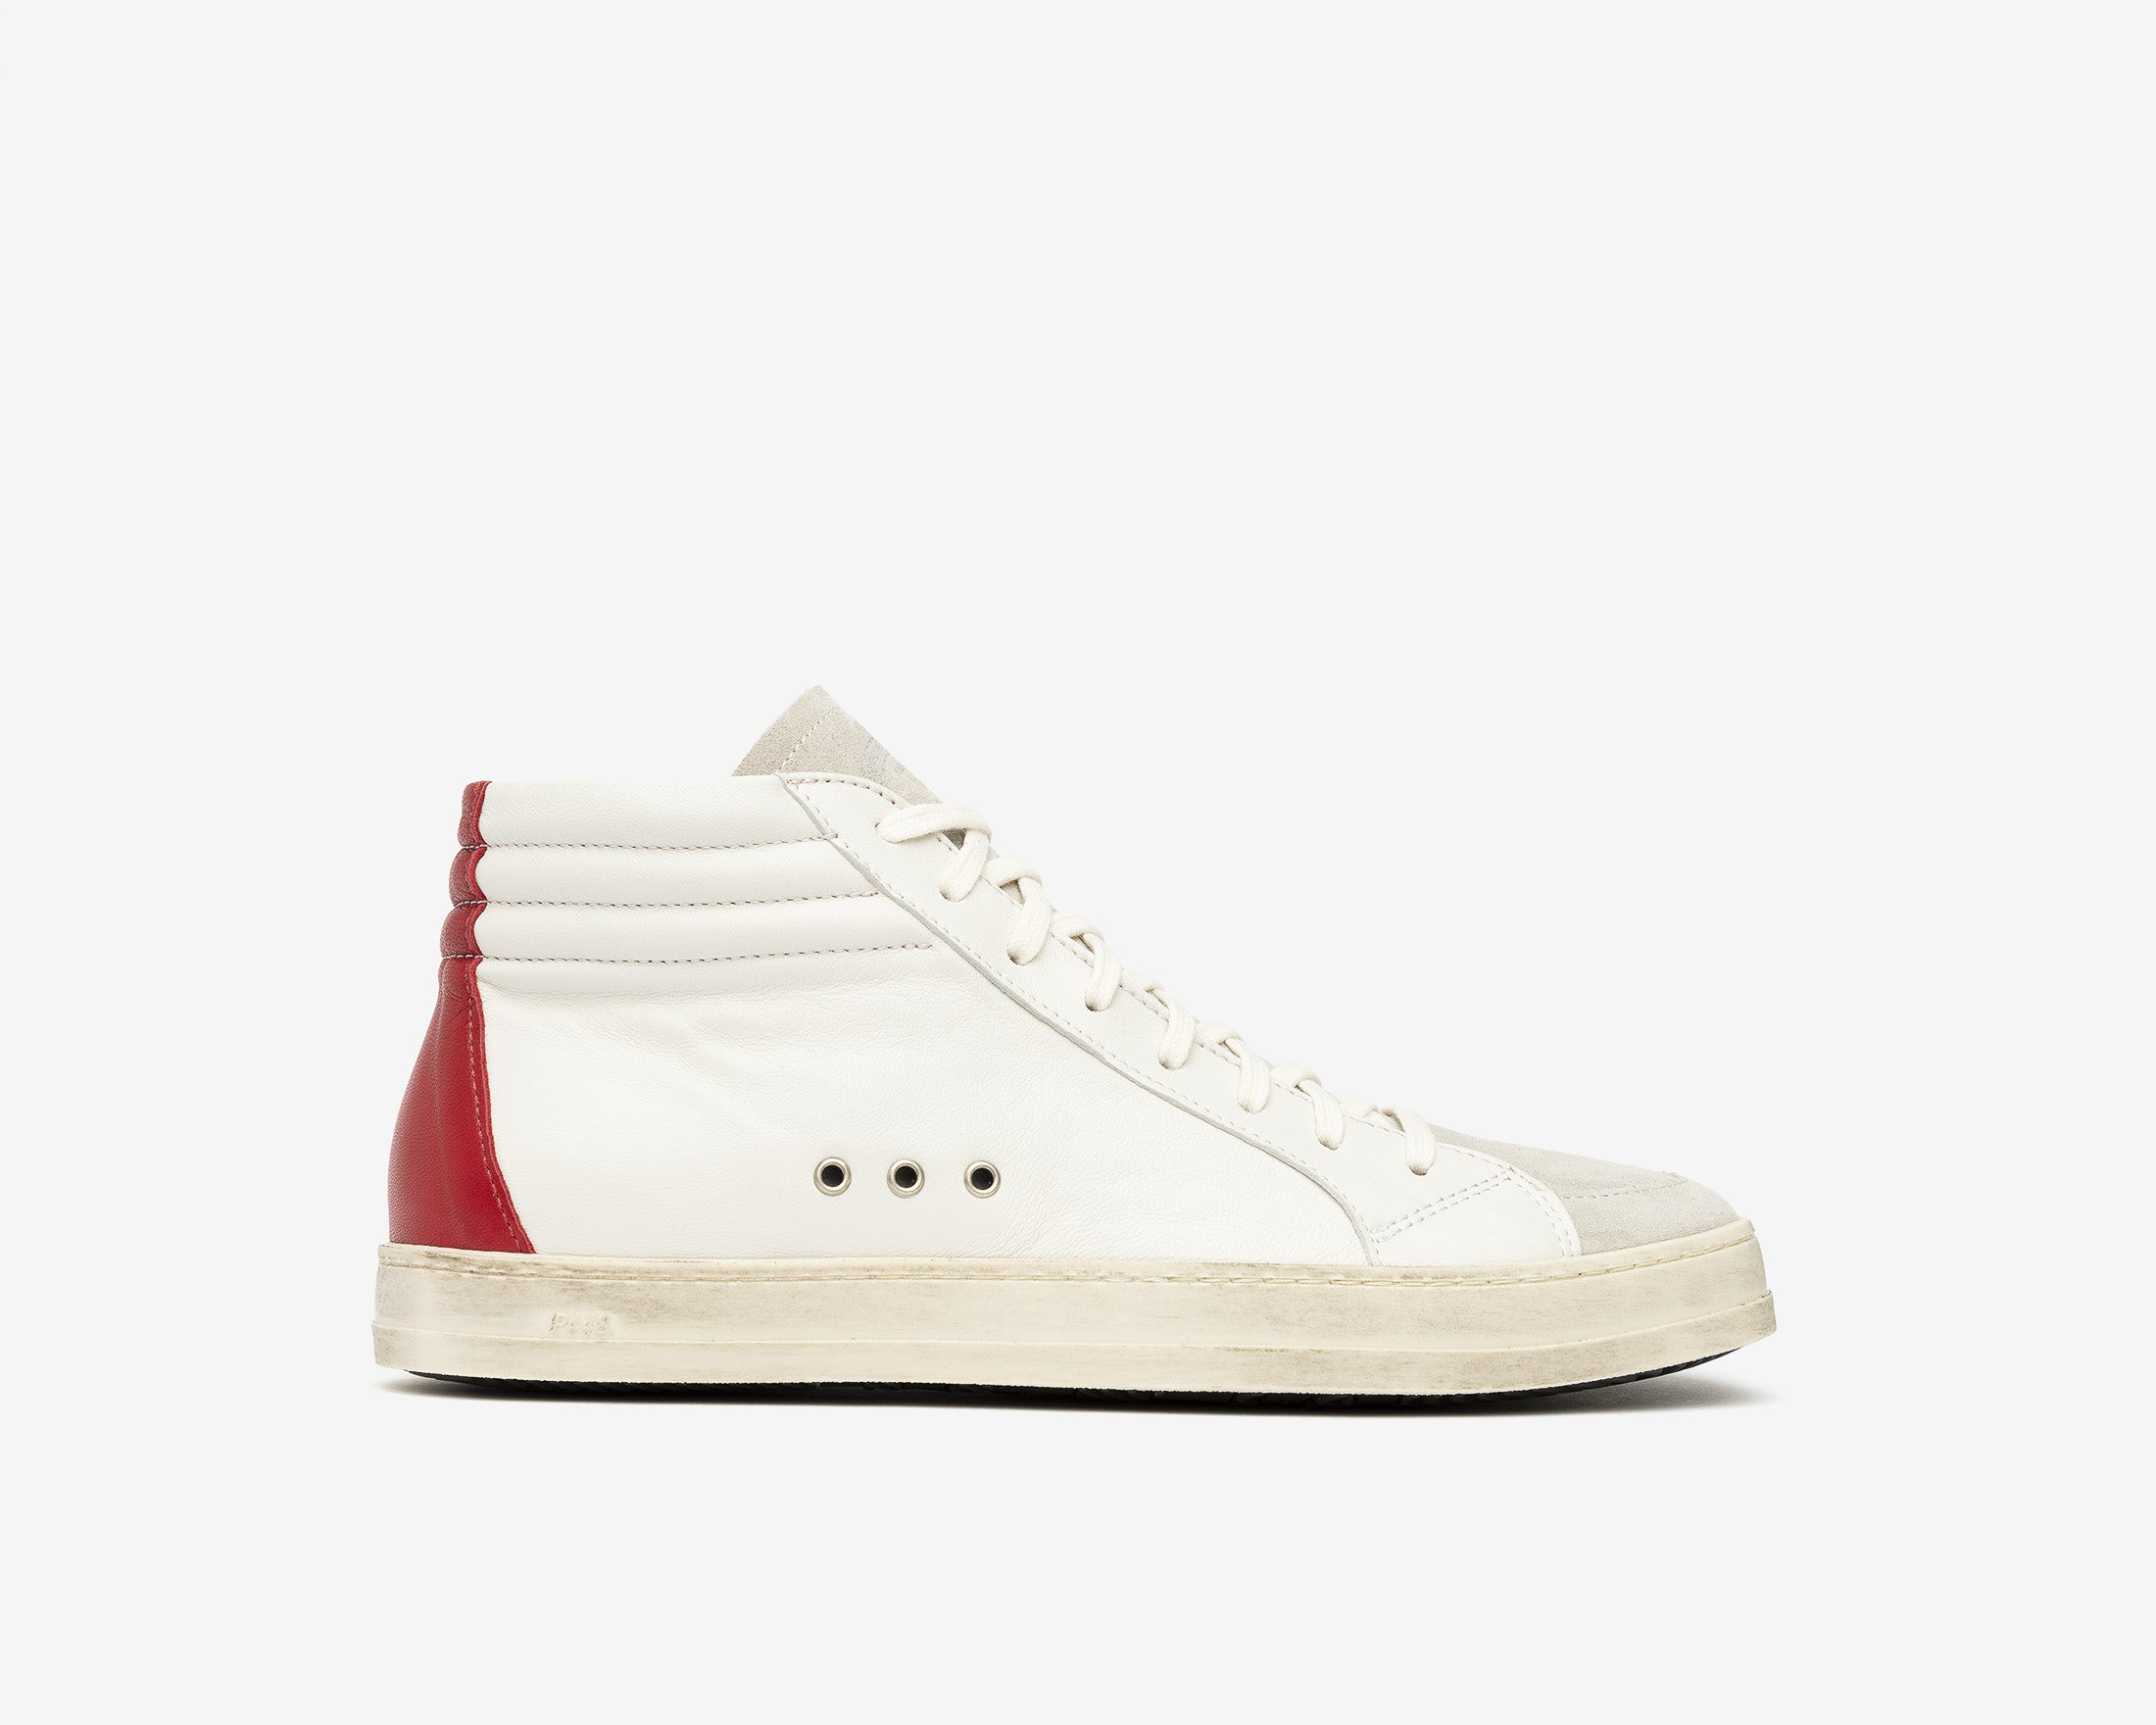 Skate Mens High-Top Sneaker Cream/Red